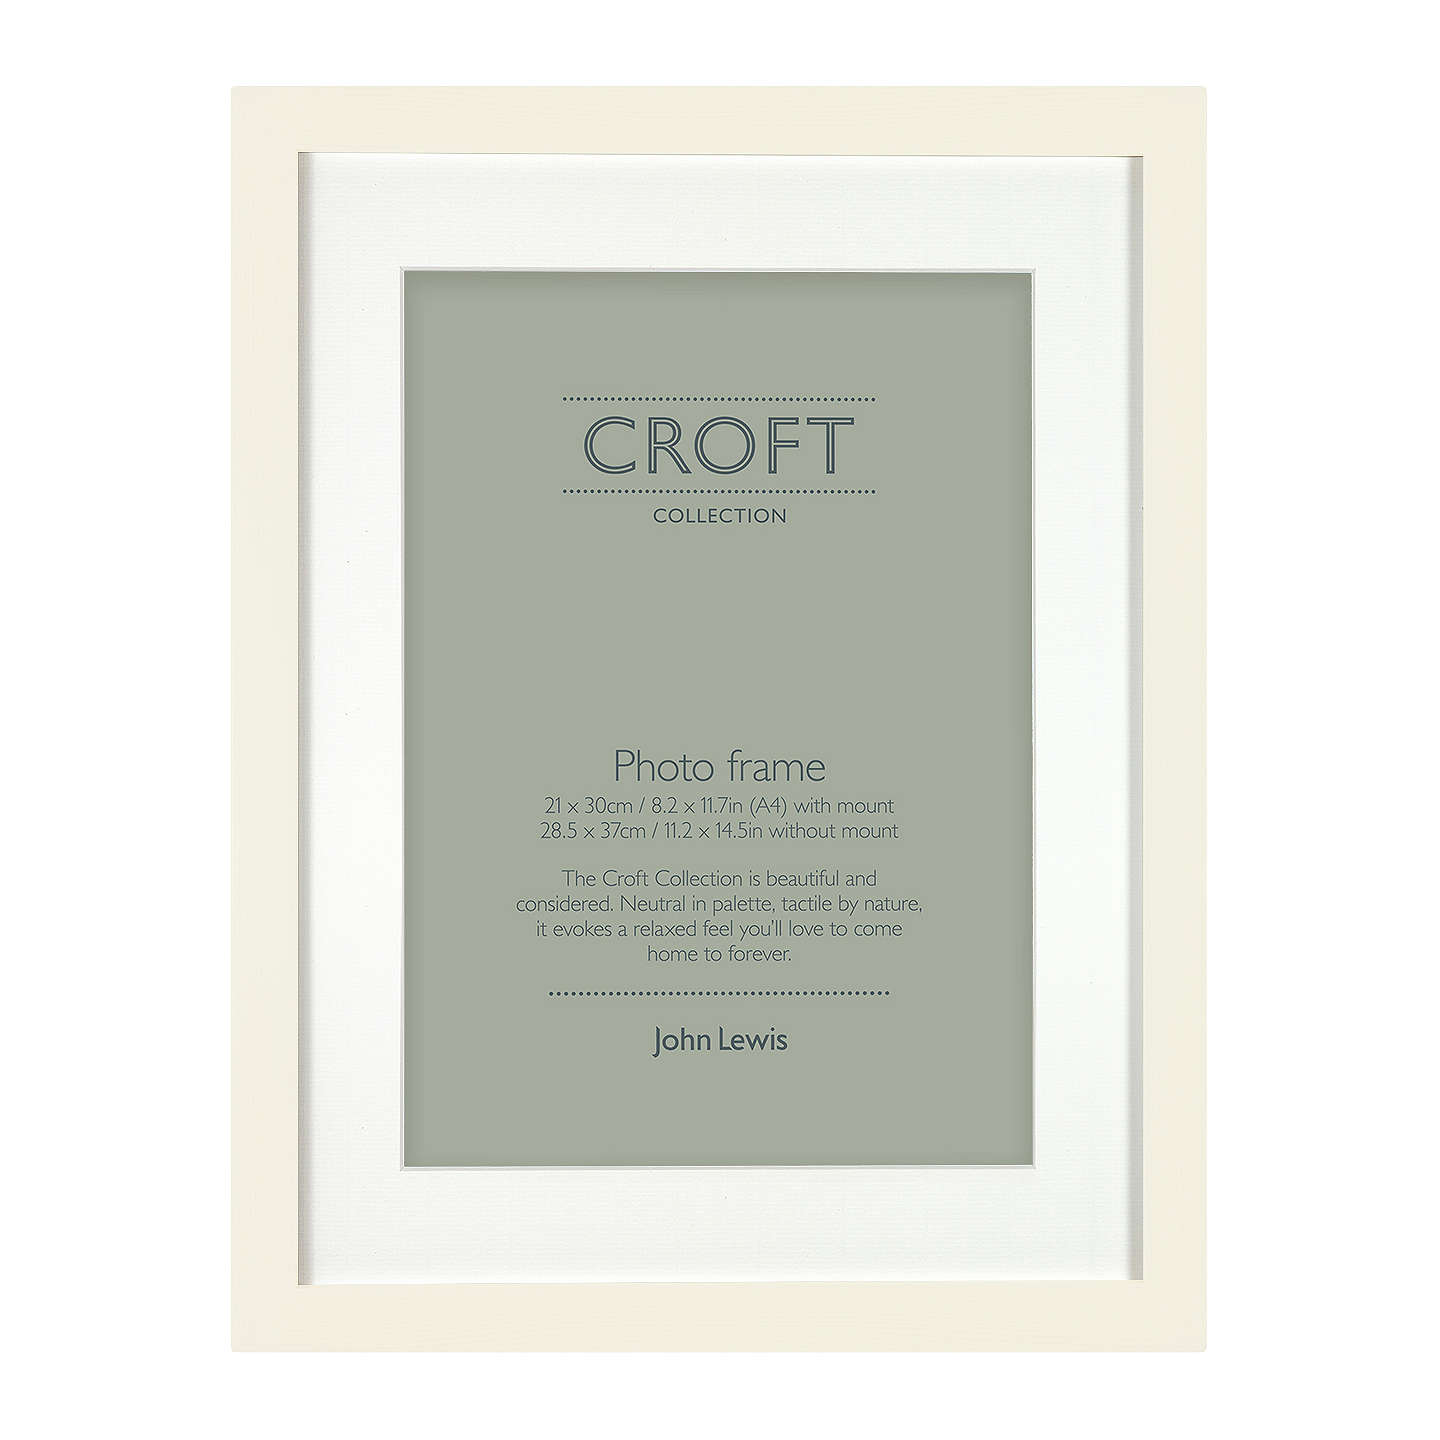 Croft Collection Frame & Mount FSC-certified, A4 (21 x 30cm) at John ...